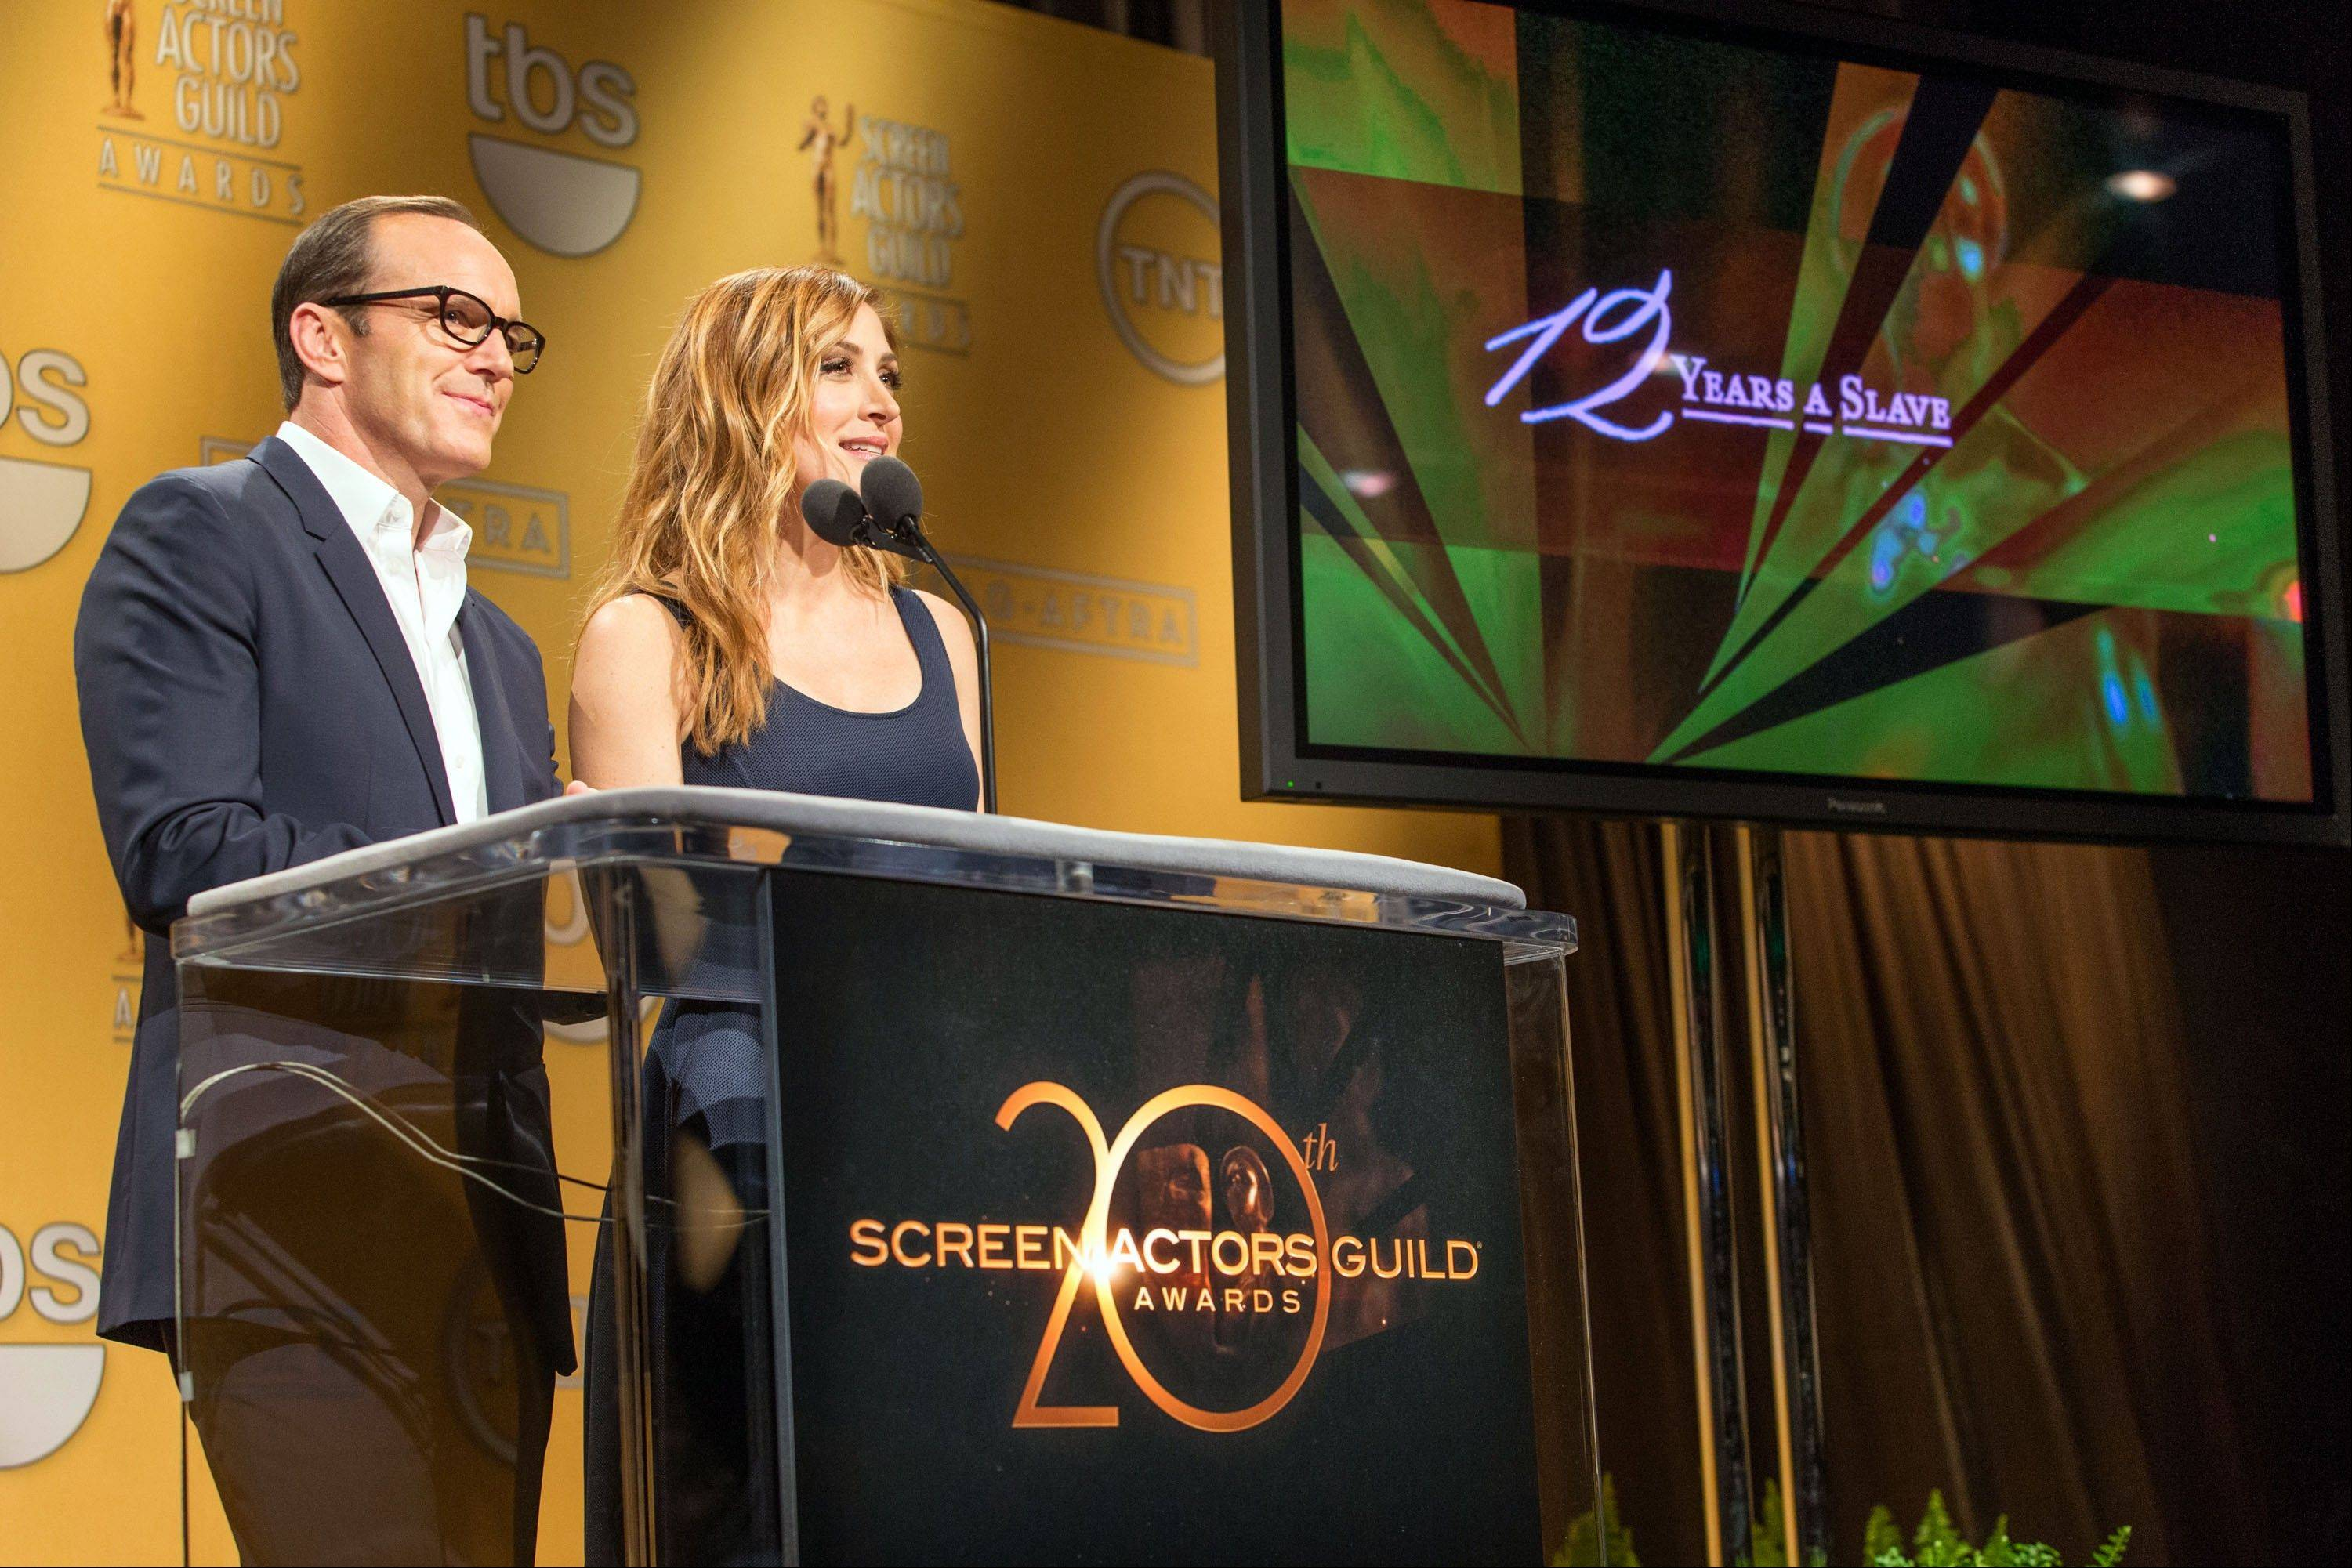 Clark Gregg and SAG Awards Social Media Ambassador Sasha Alexander announce the nominees for the 20th Annual Screen Actors Guild Awards at the Pacific Design Center in Los Angeles on Wednesday.